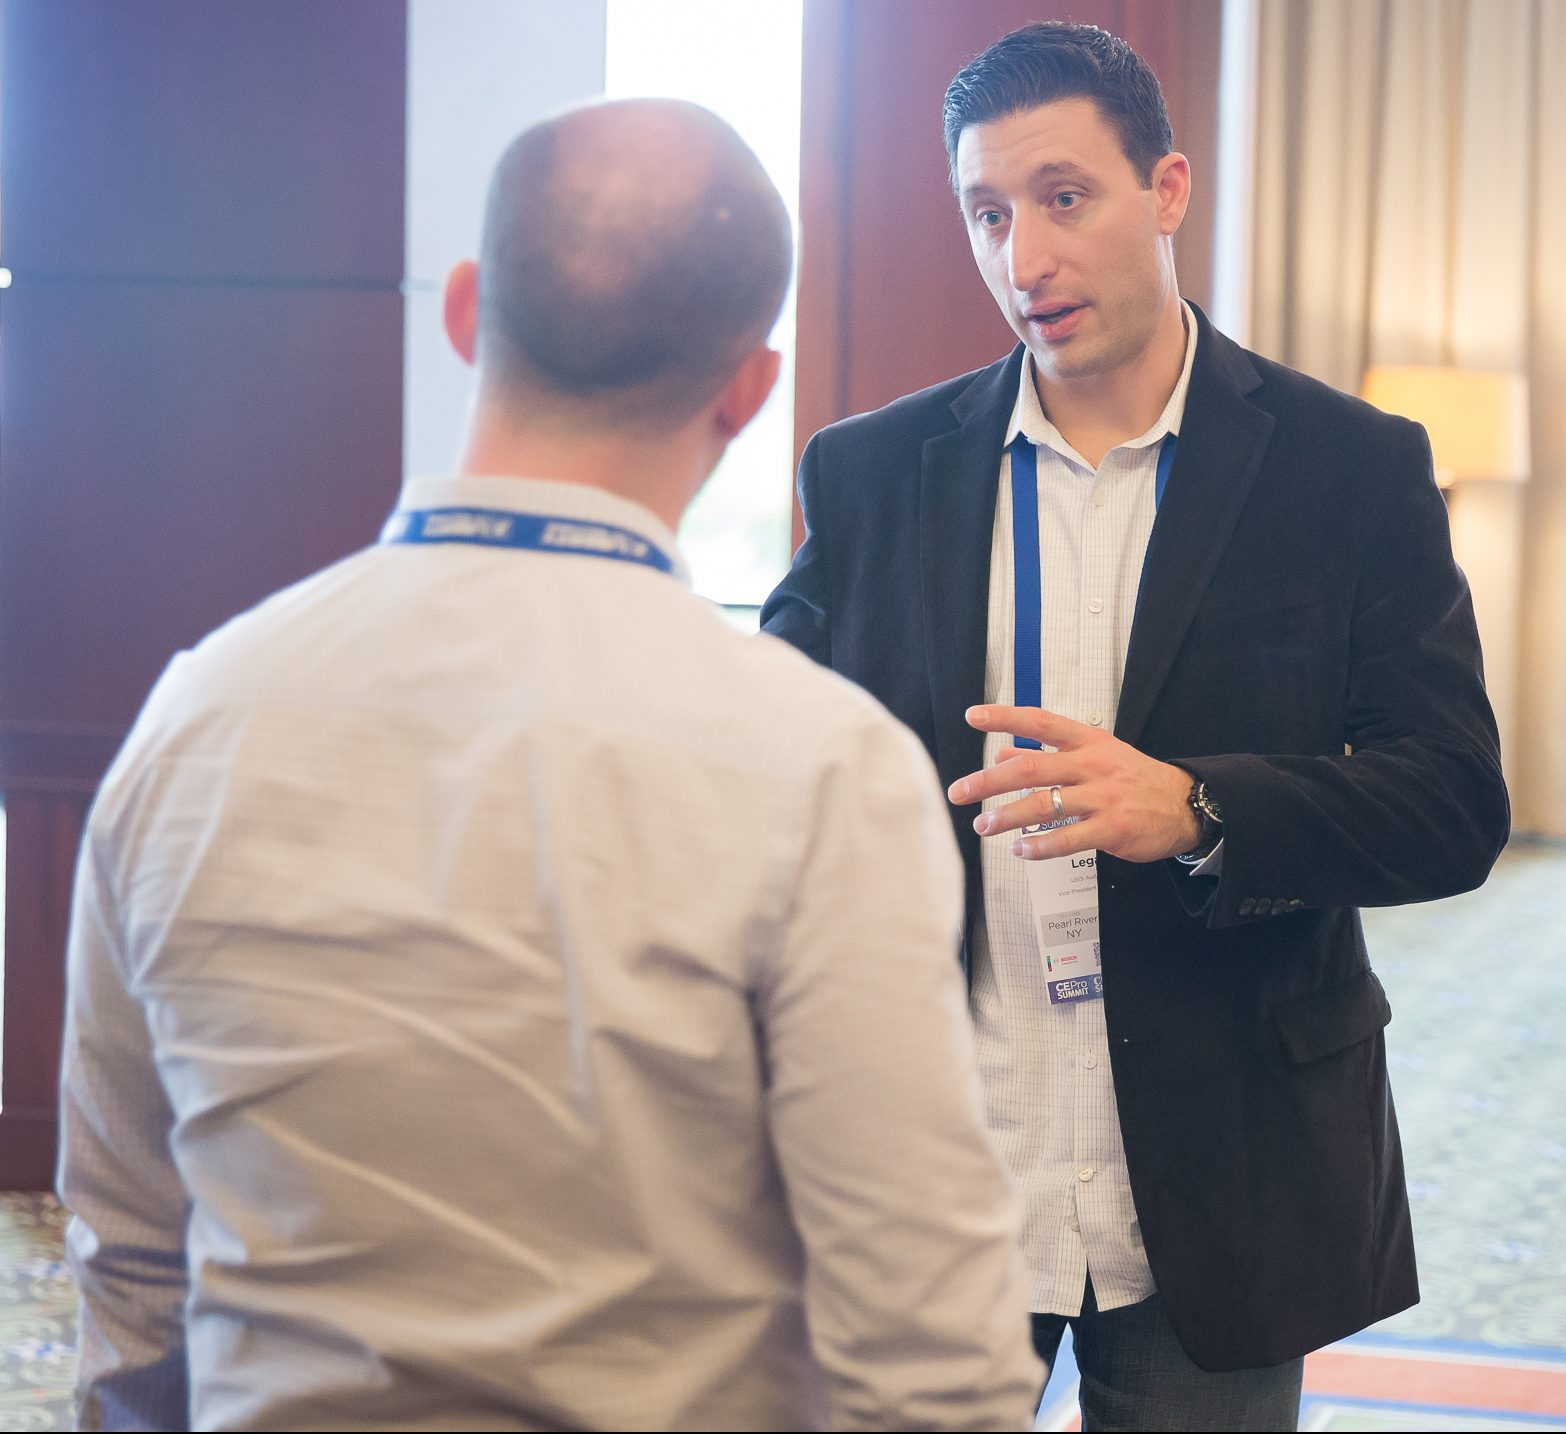 Joe Legato says the networking opportunities at the CI Summit make it one of his favorite events.